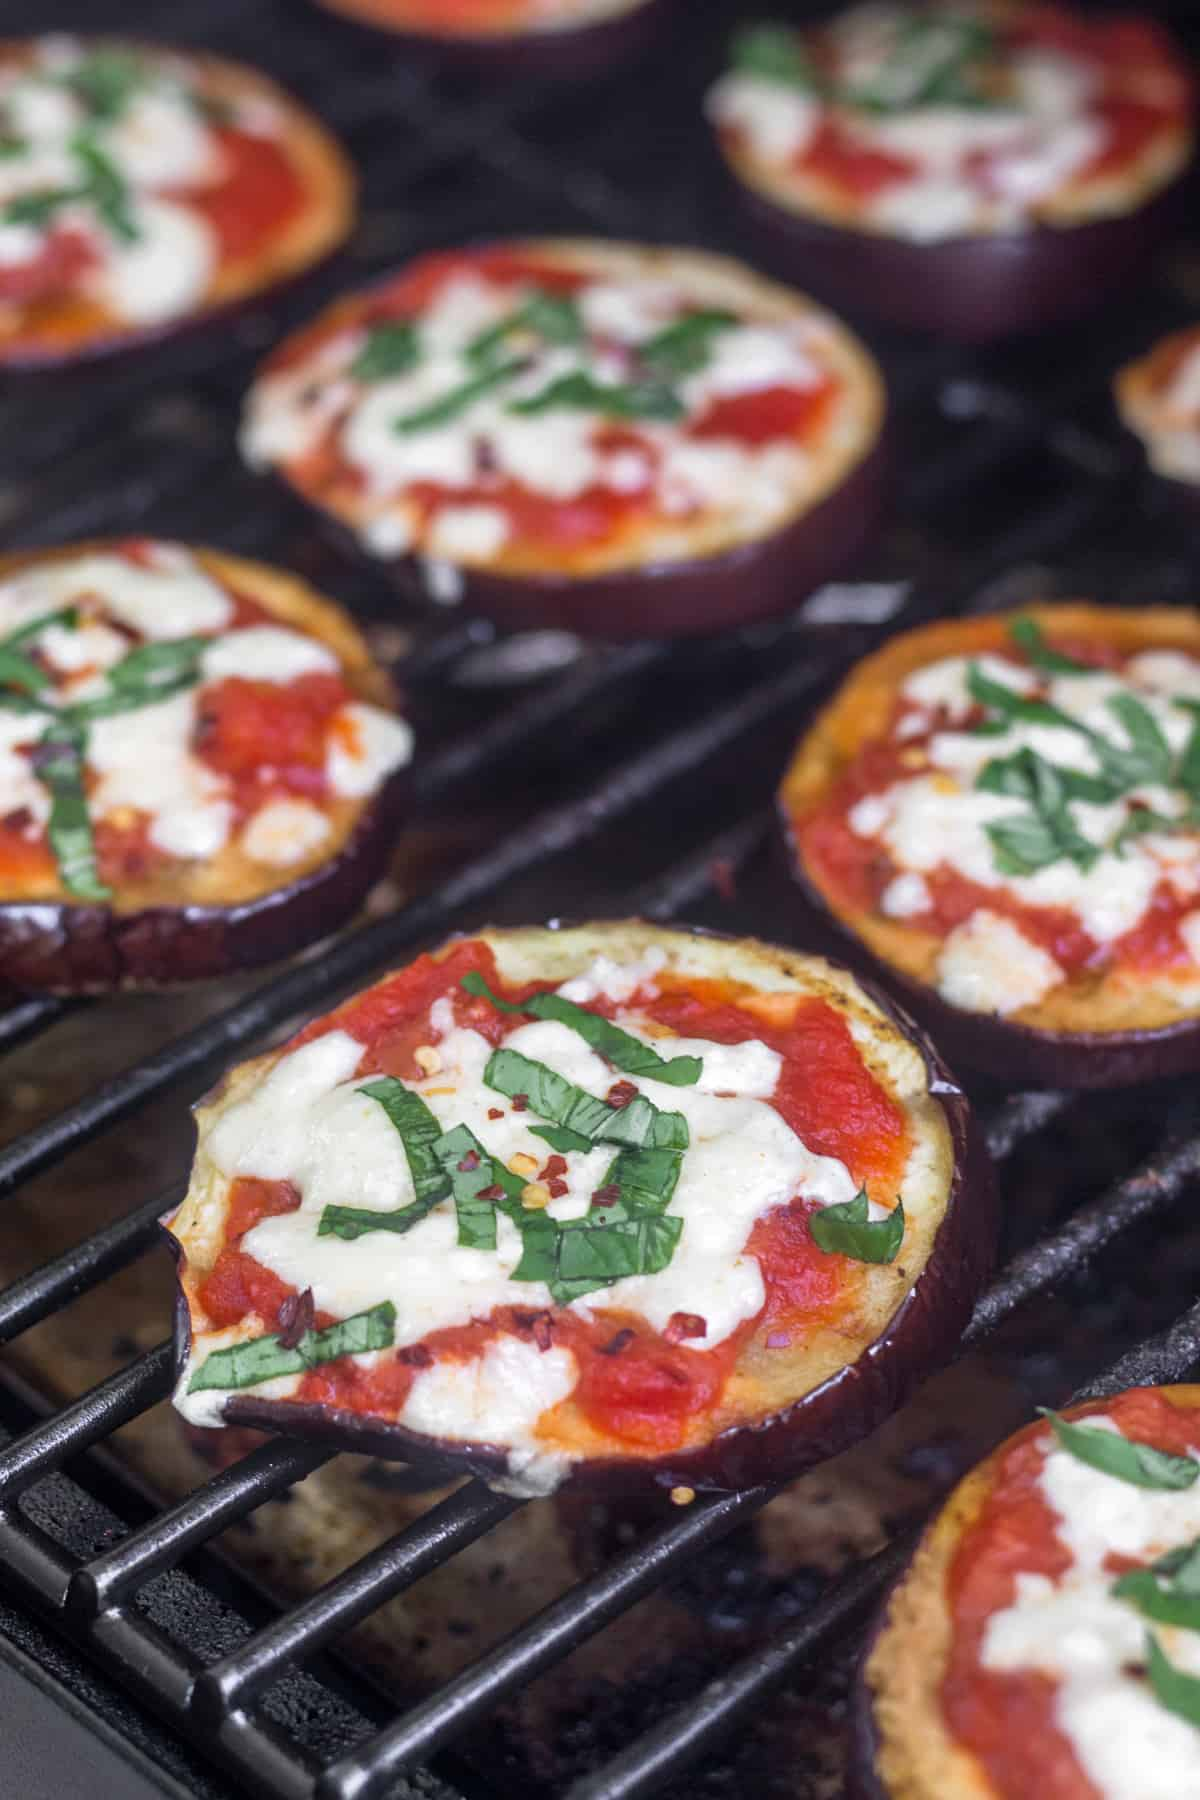 Grilled Eggplant Pizza topped with fresh basil and red pepper flakes on the grill